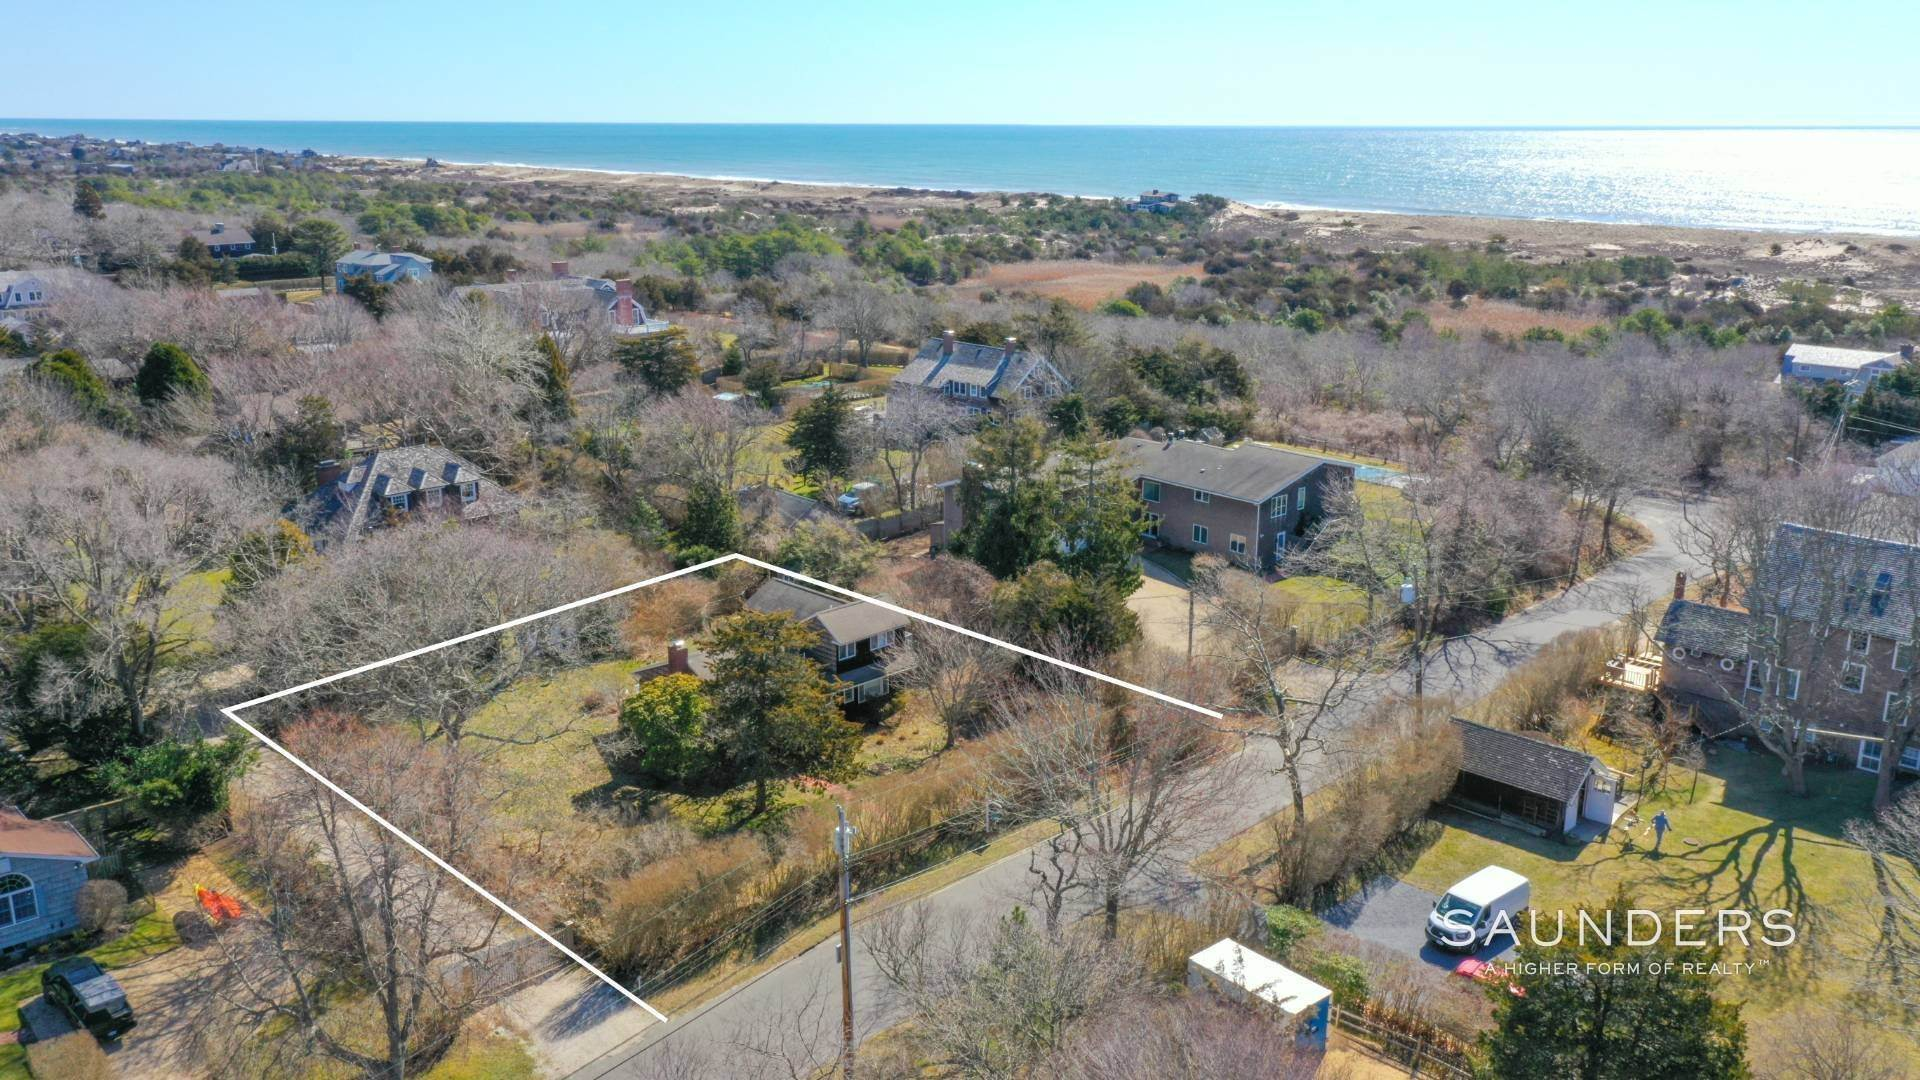 Single Family Homes for Sale at Amagansett Lanes Near Bluff Road 121 Hedges Lane, Amagansett, East Hampton Town, NY 11930